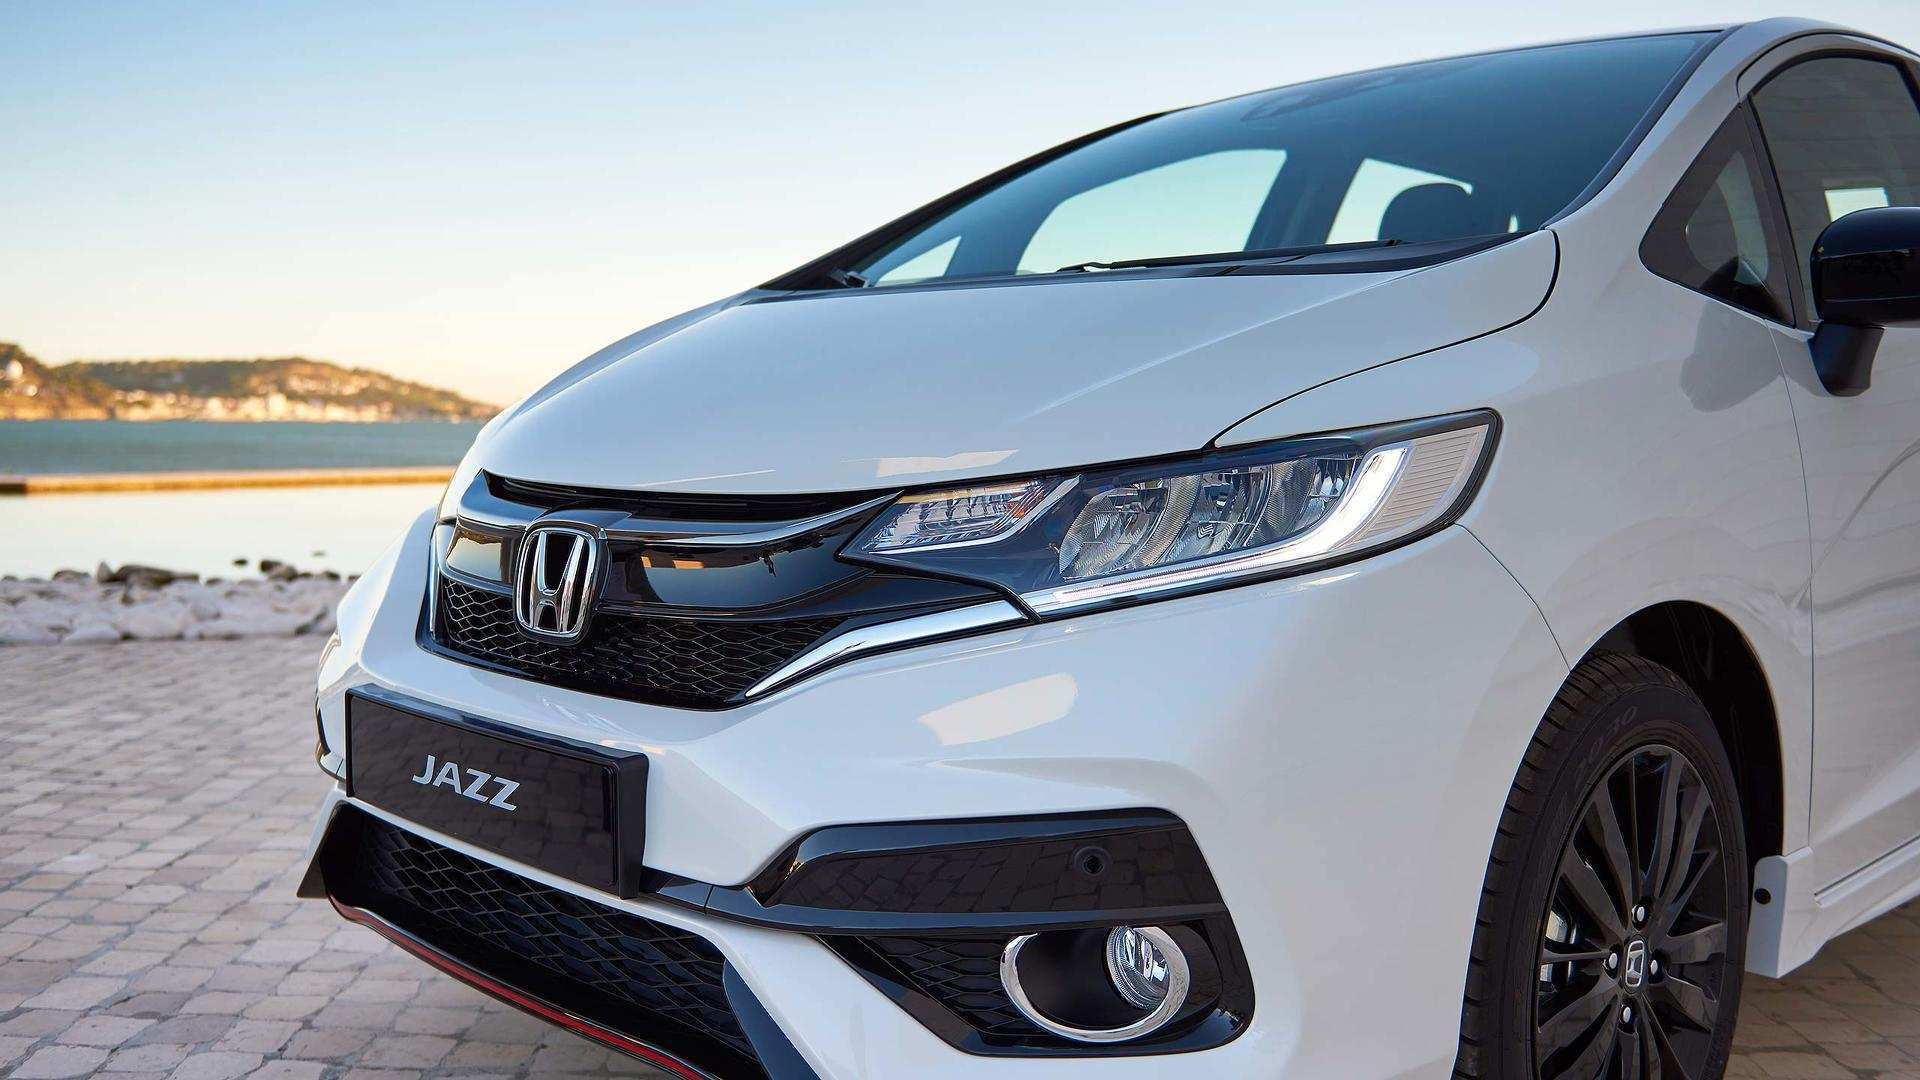 43 The Best 2020 Honda Jazz New Review